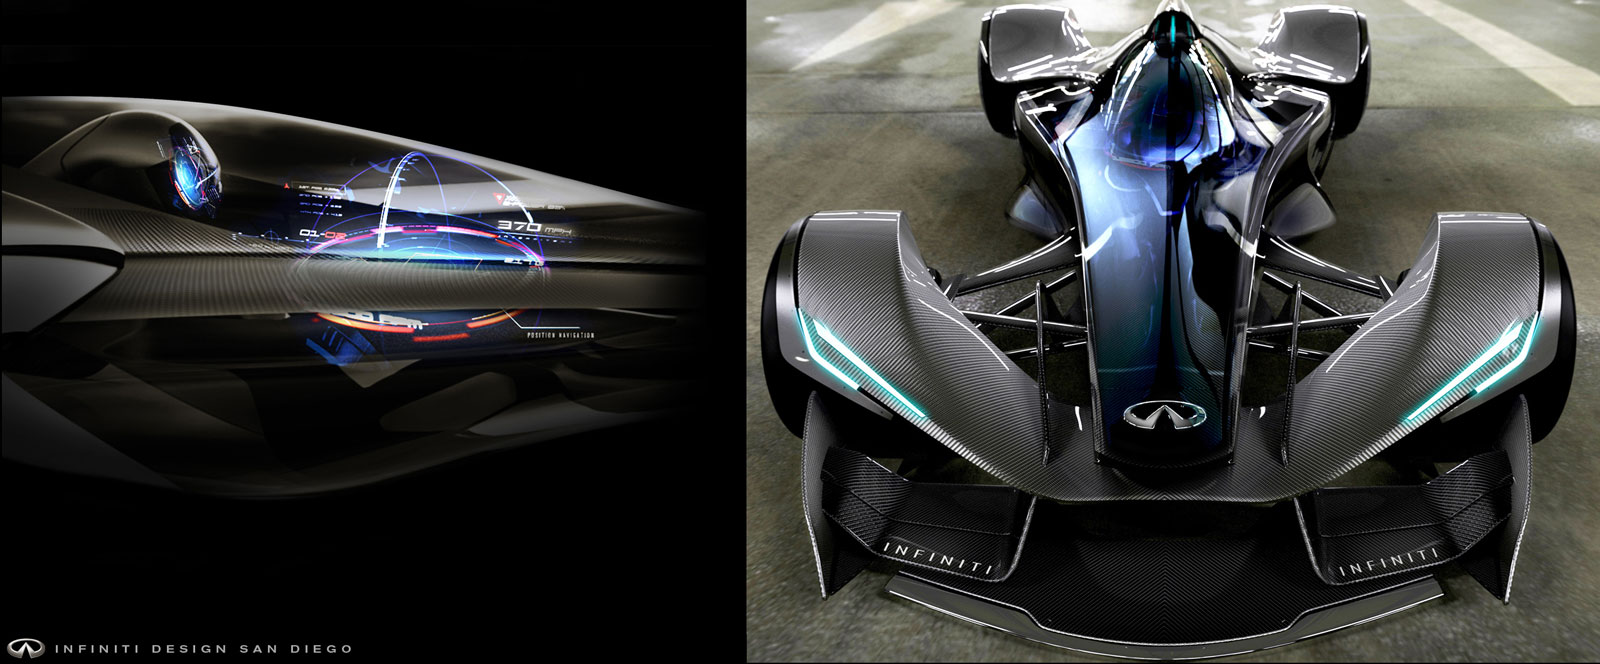 Infiniti SYNAPTIQ Concept - Formula One and interface